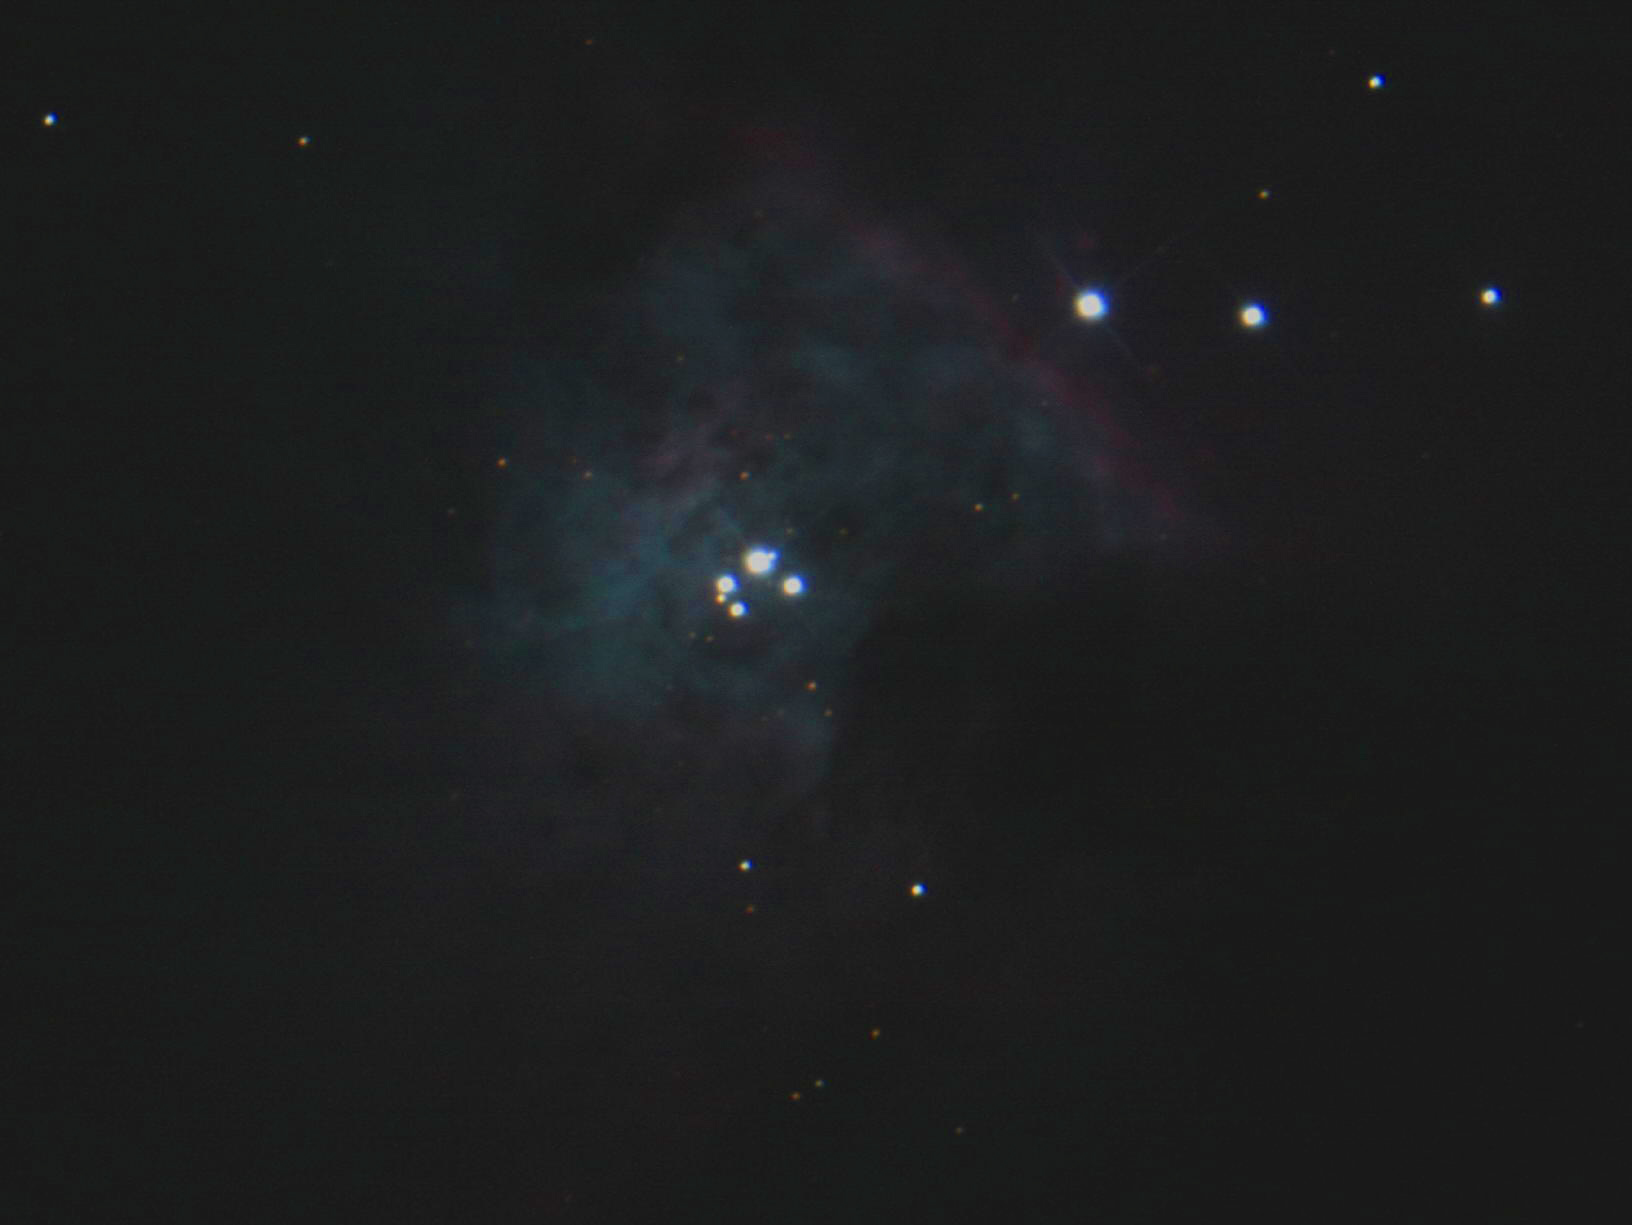 Orion nebula telescope view